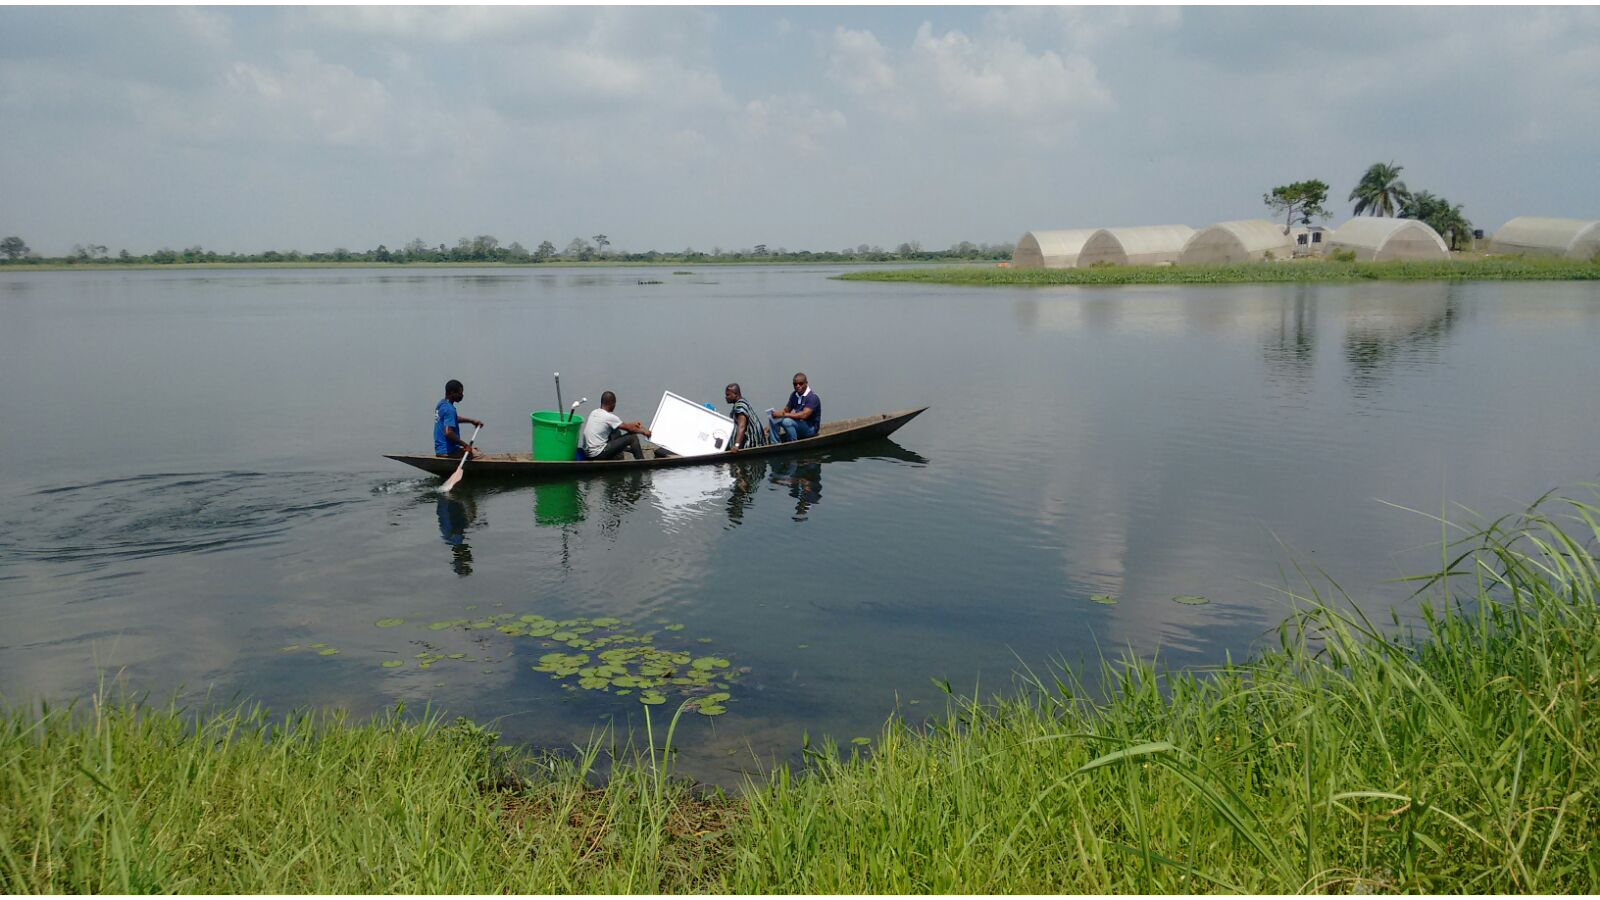 Four men and a solar pump in a boat on a lake in Ghana